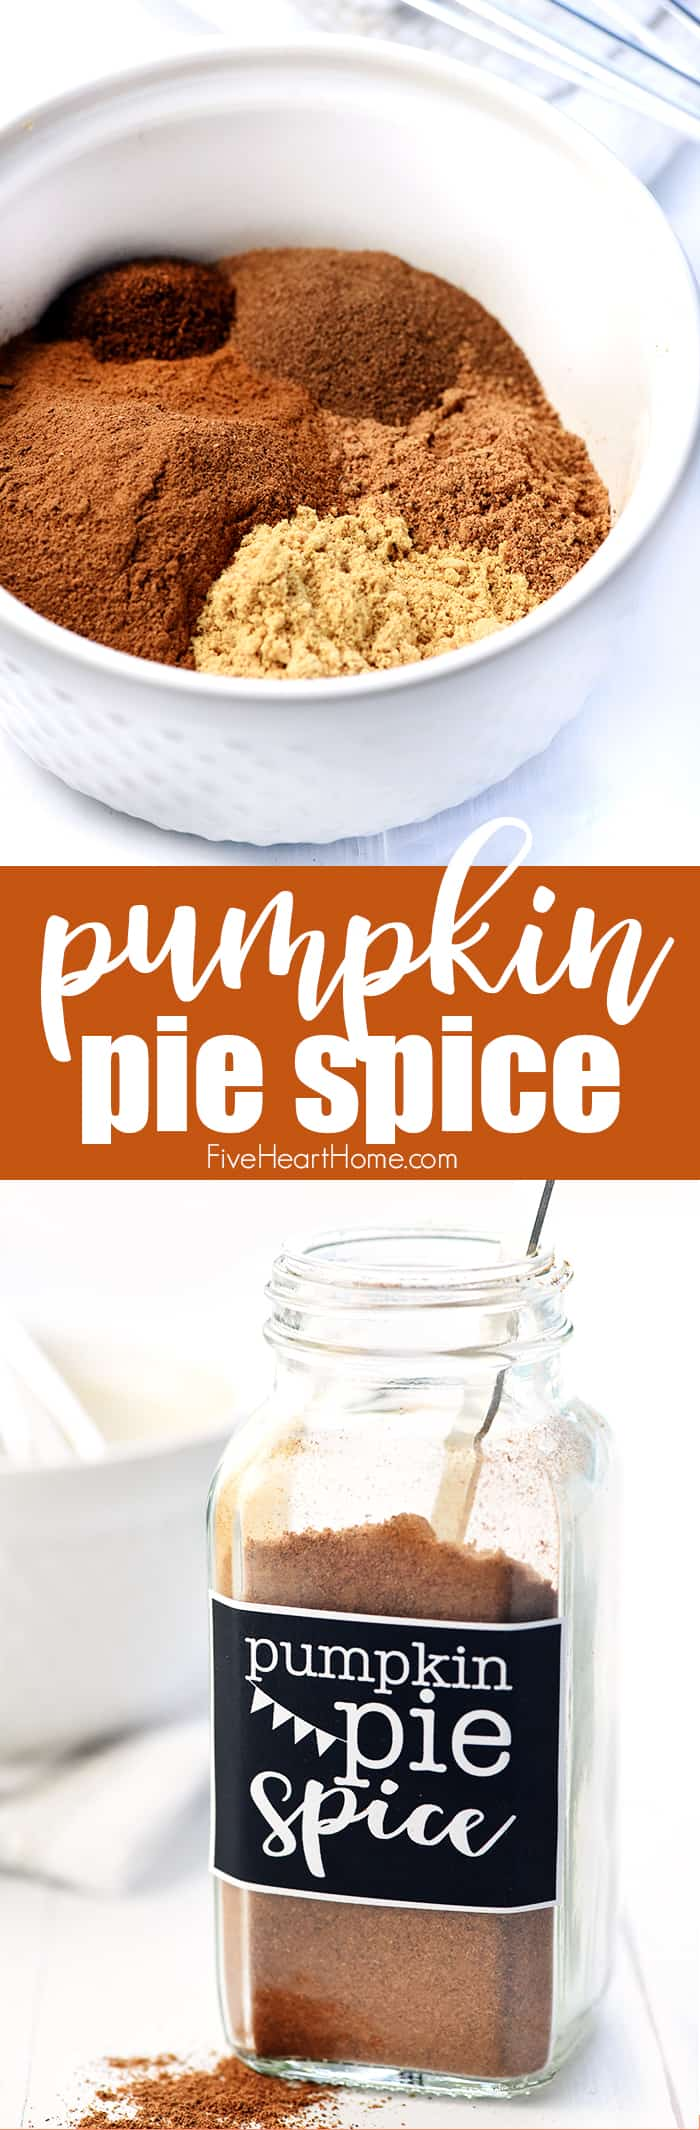 Pumpkin Pie Spice ~ a homemade spice blend that can be made in bulk and tweaked to your liking, perfect for flavoring all of your favorite fall treats! | FiveHeartHome.com